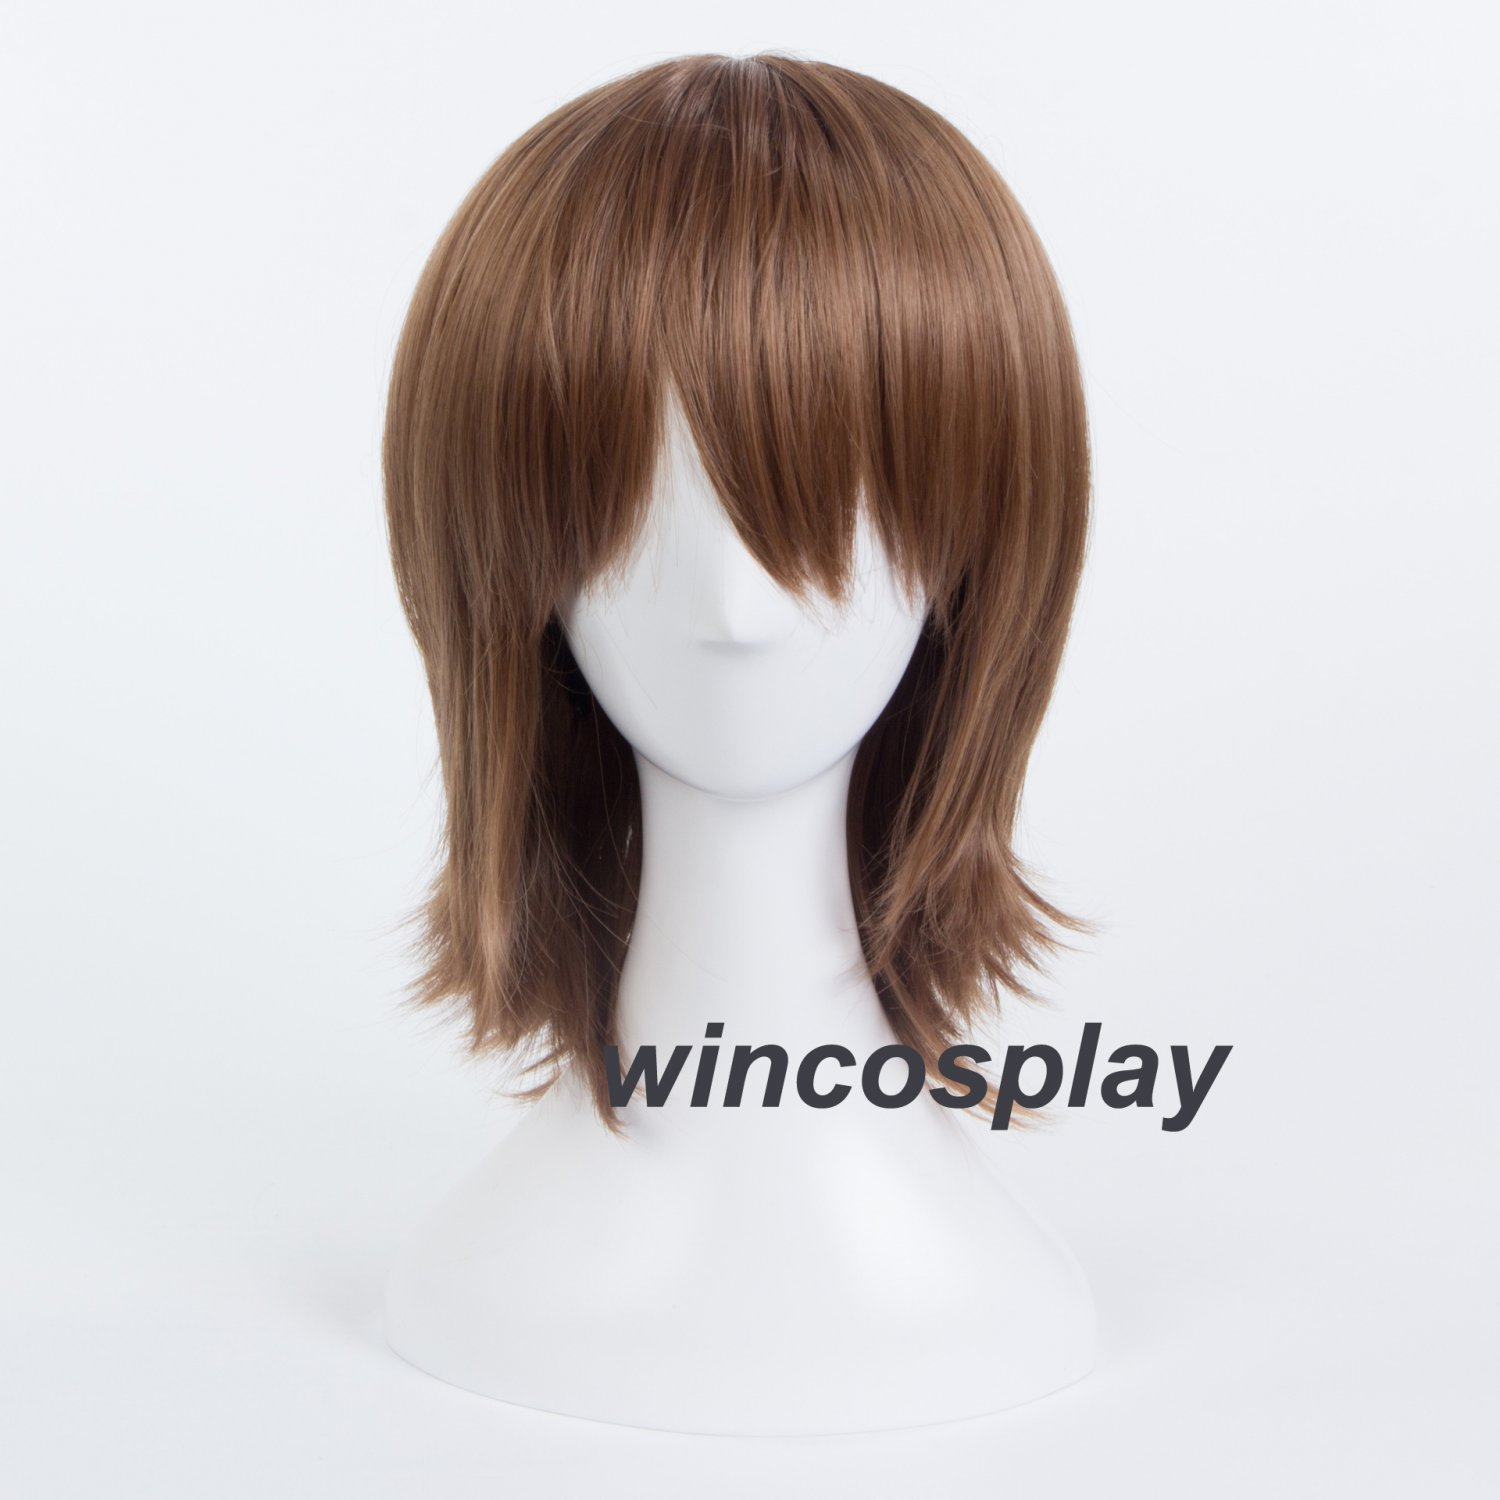 Persona 5 P5 Goro Akechi Cosplay Wig Medium Long Brown Flaxen Hair Anime Wigs